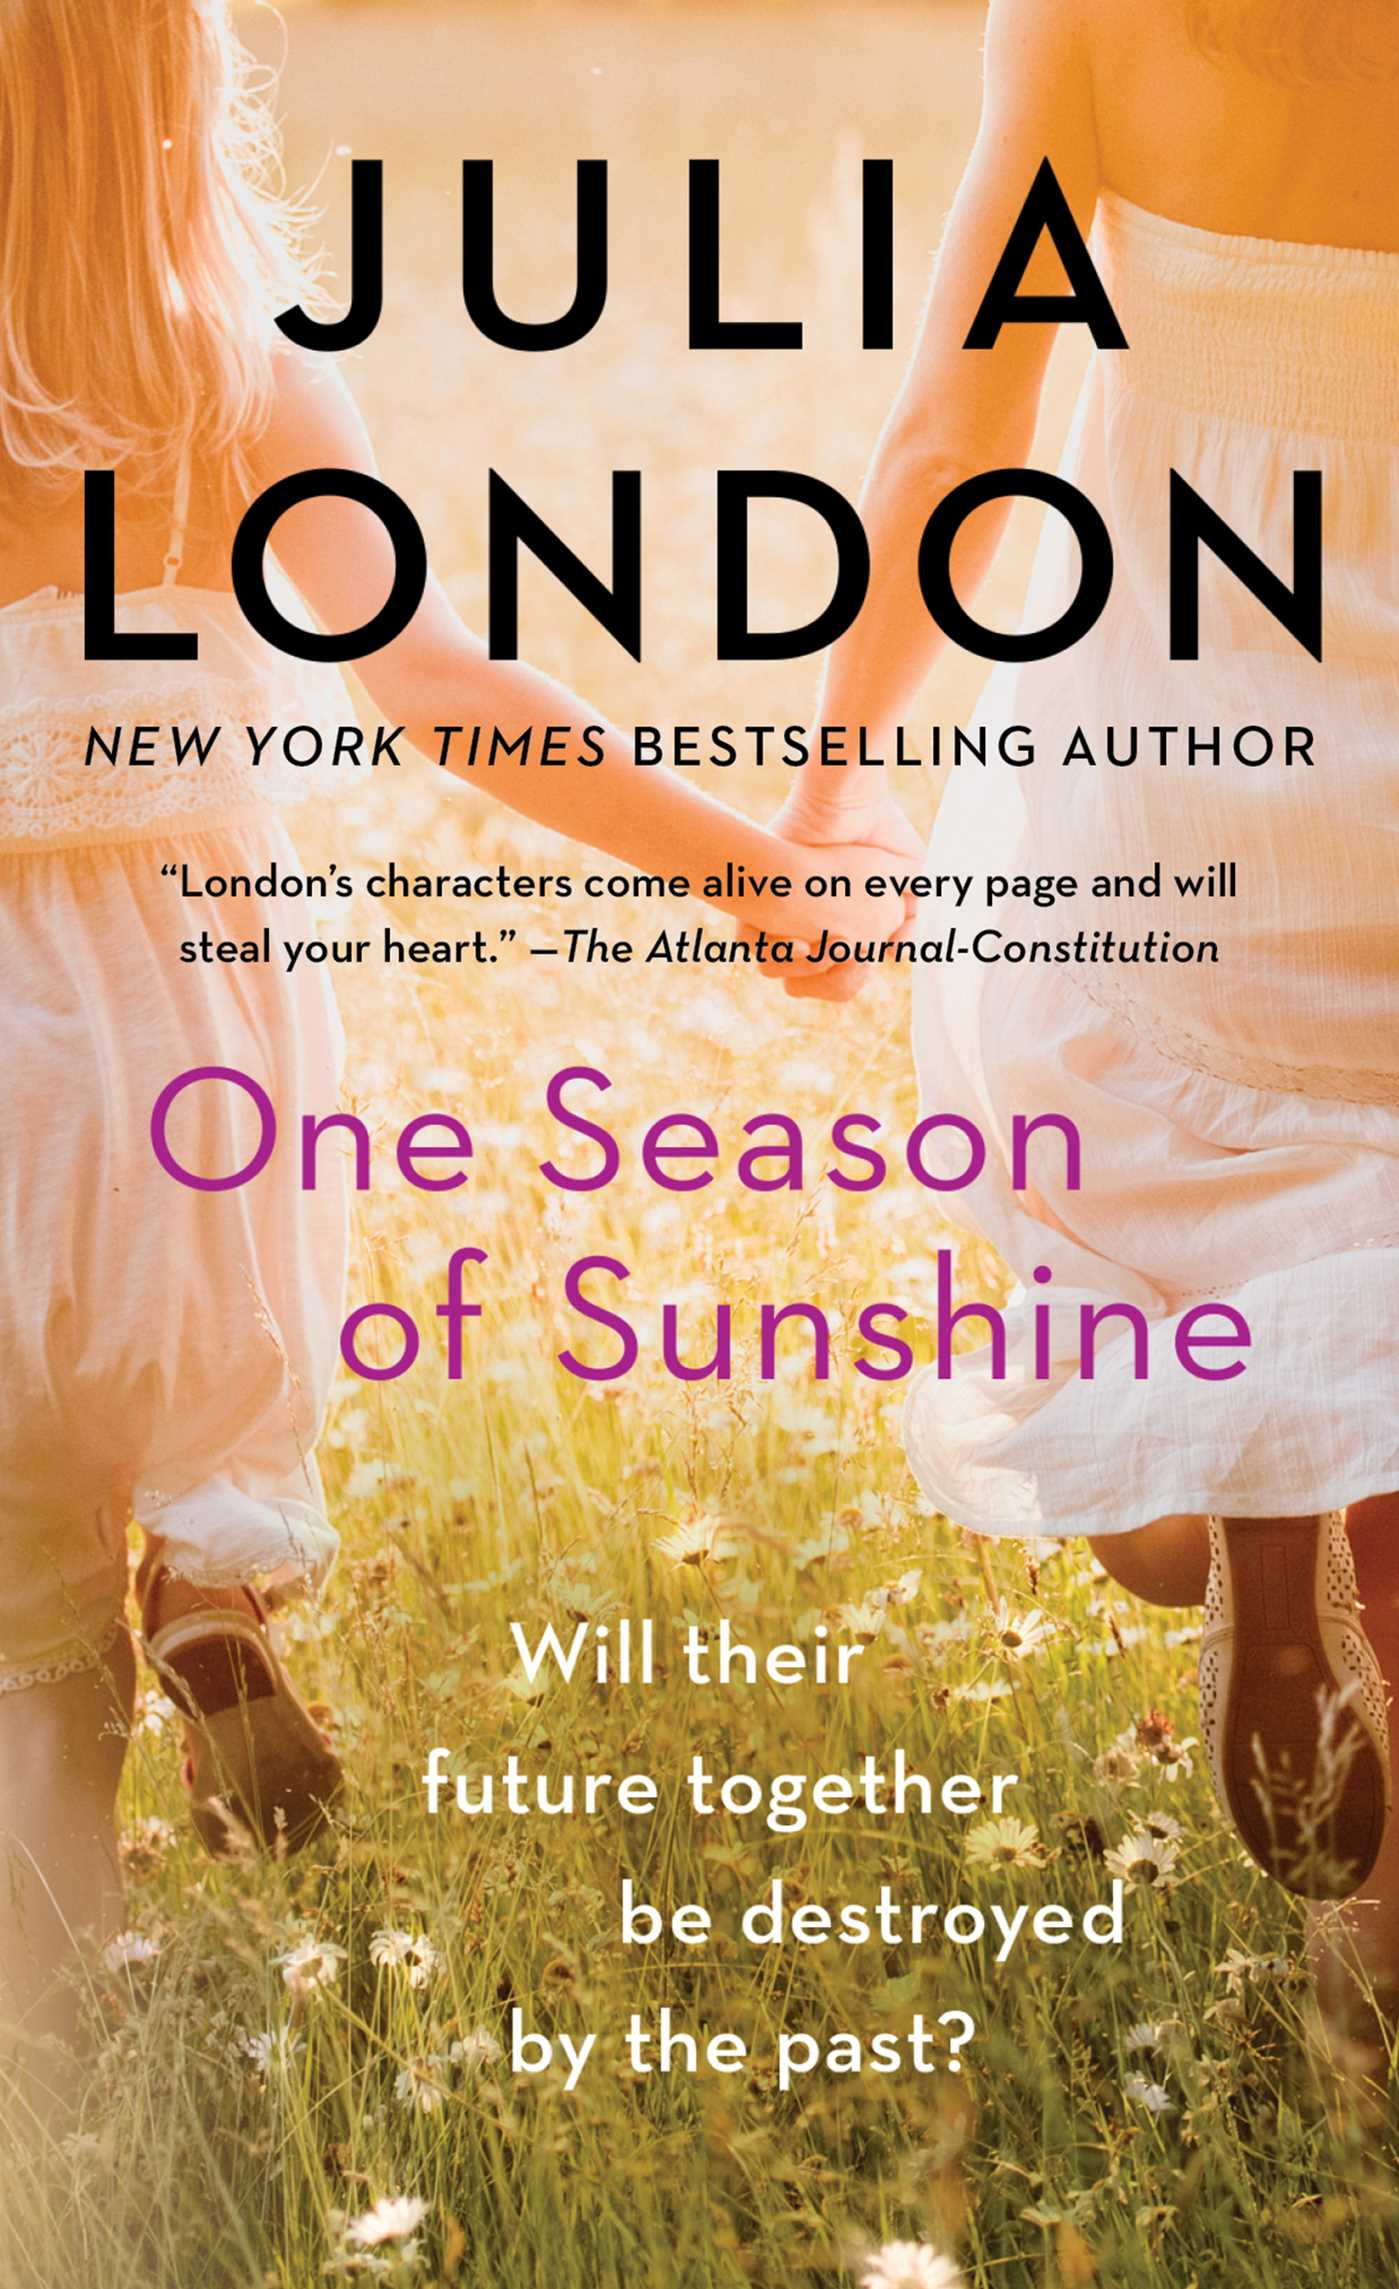 One-season-of-sunshine-9781439168912_hr